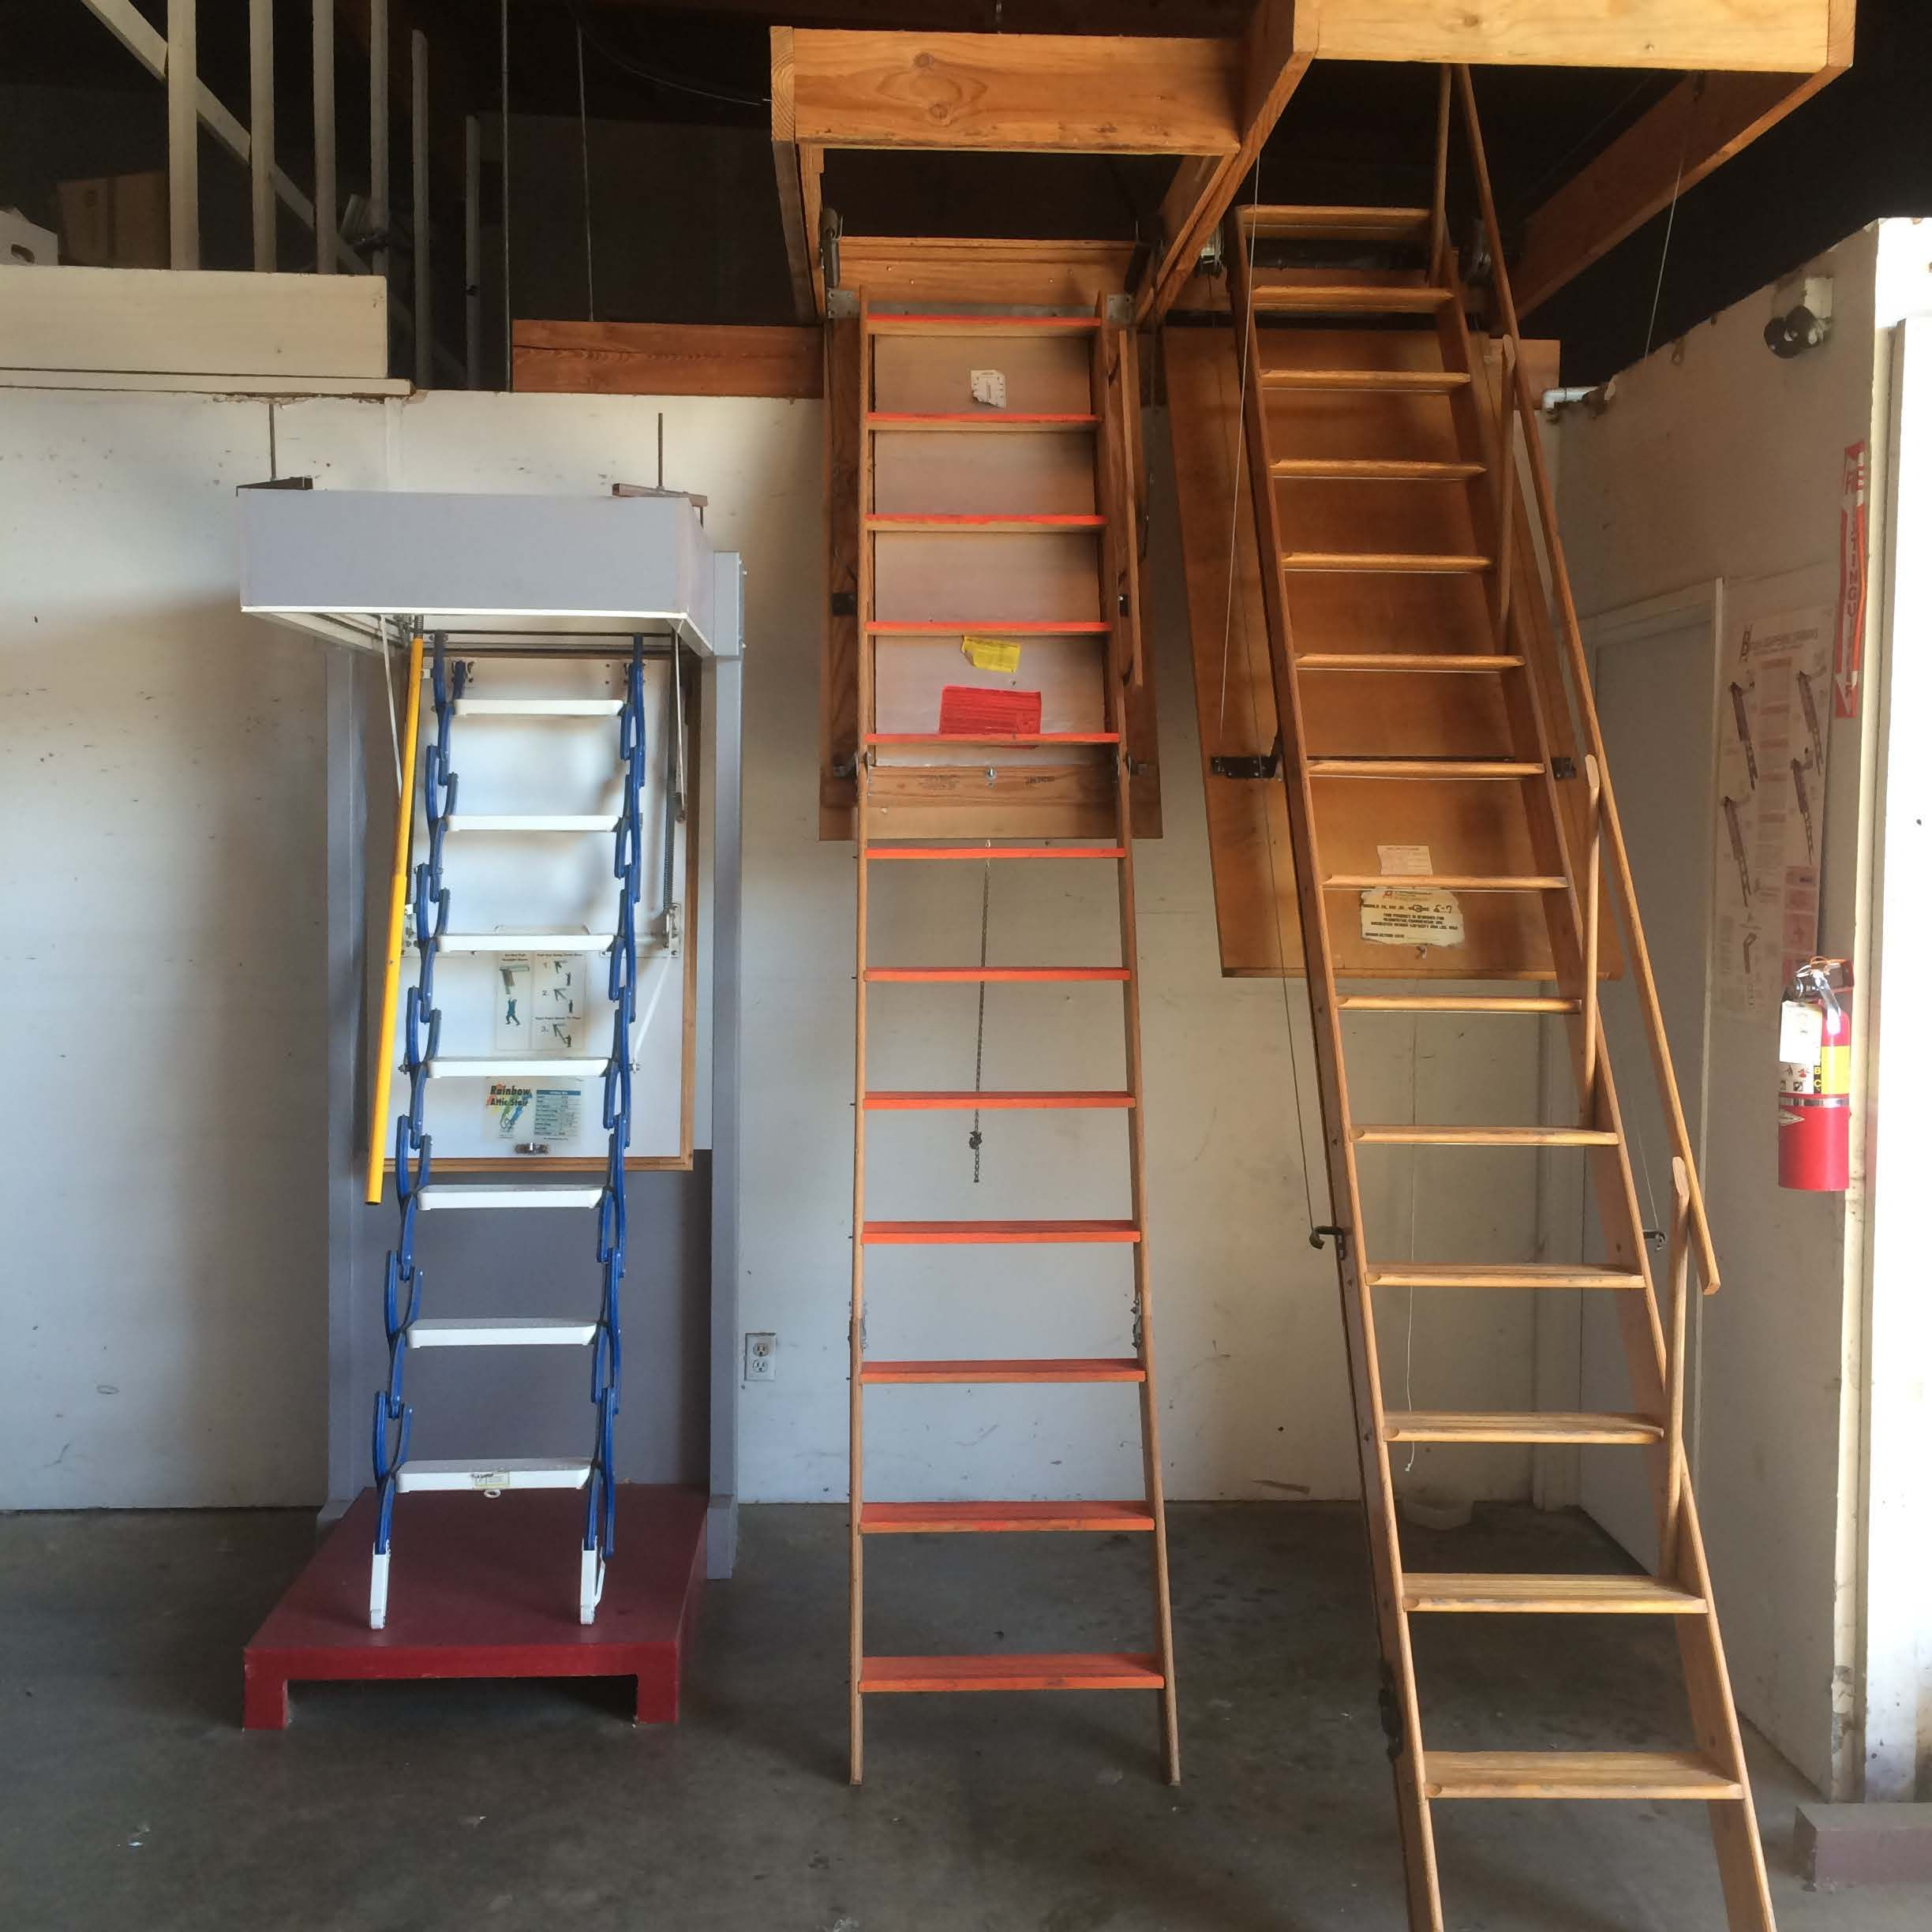 Pin By Kinnamondeb On Home 2 In 2020 Attic Ladder Attic Stairs Attic Access Ladder